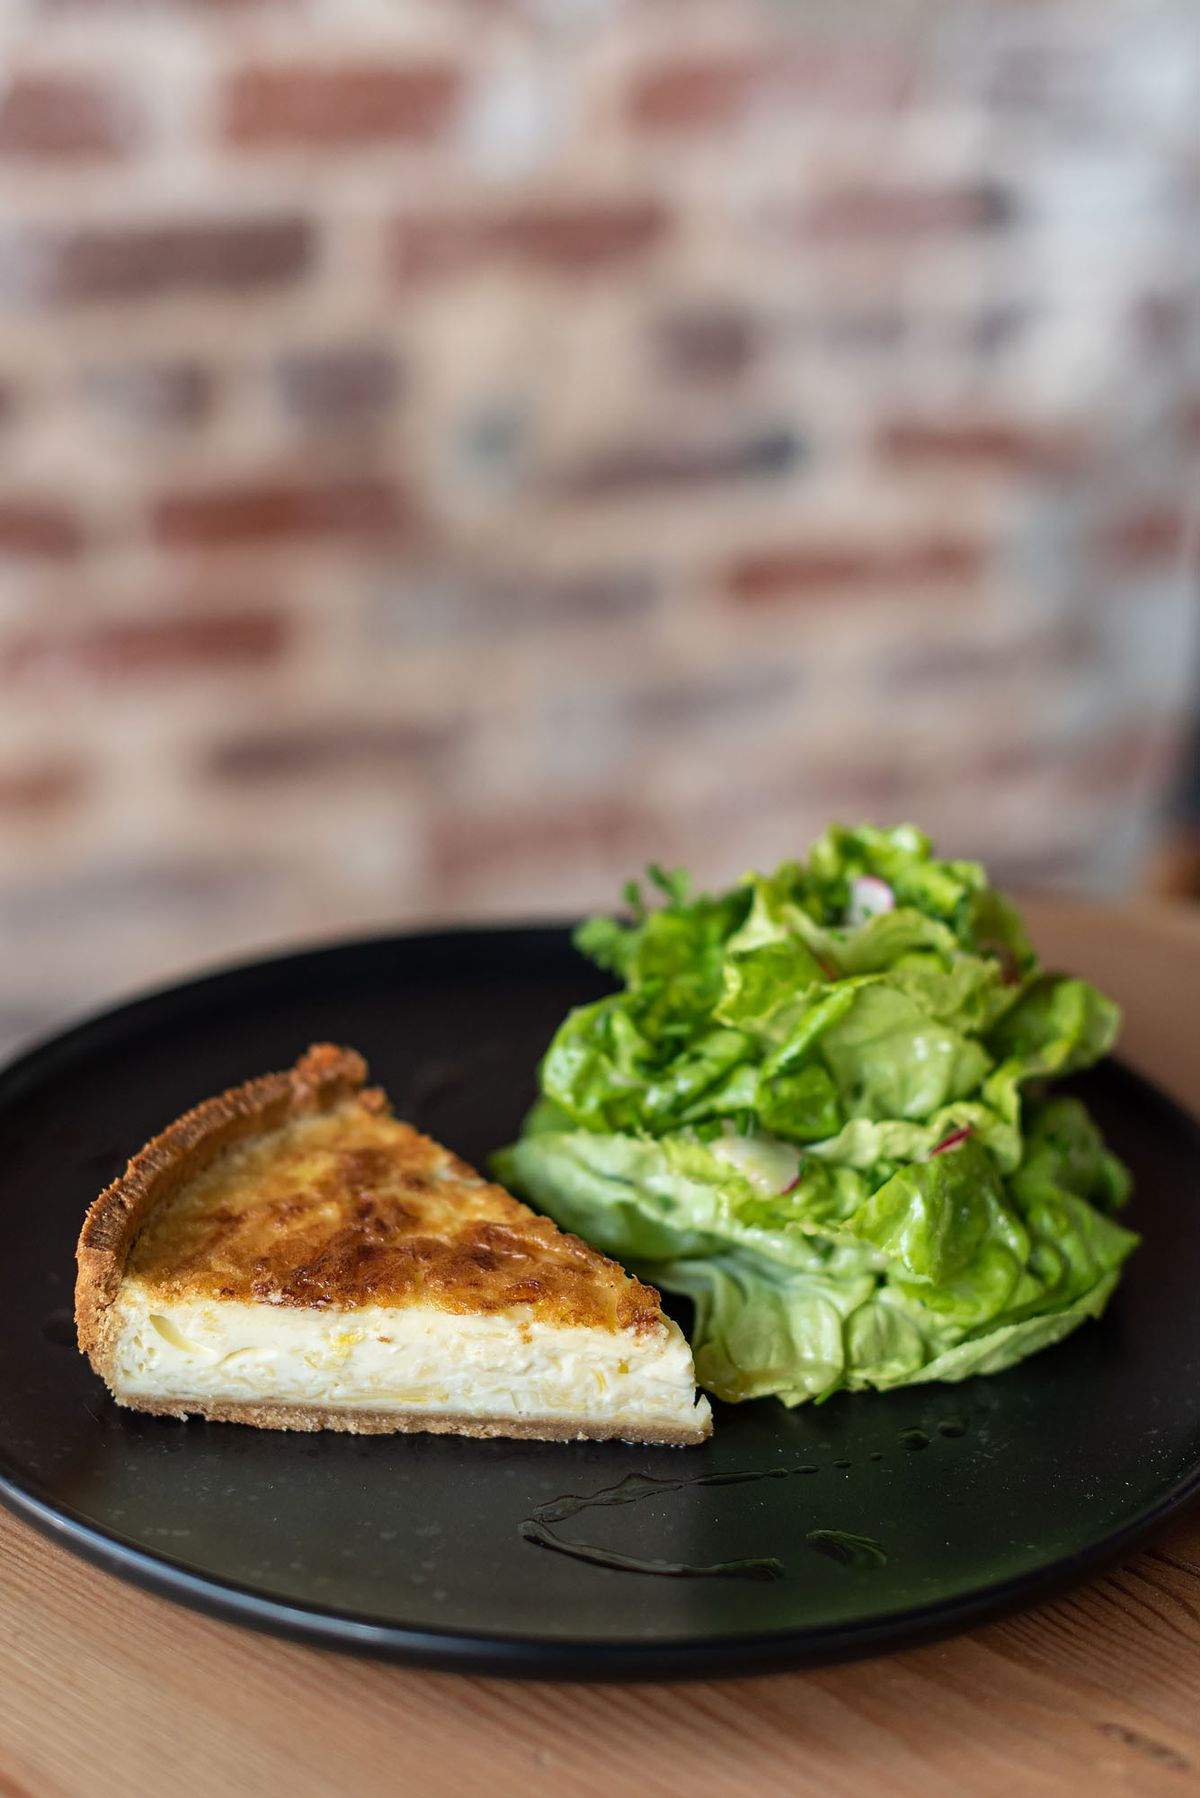 A triangle of a quiche with leeks and a side salad.